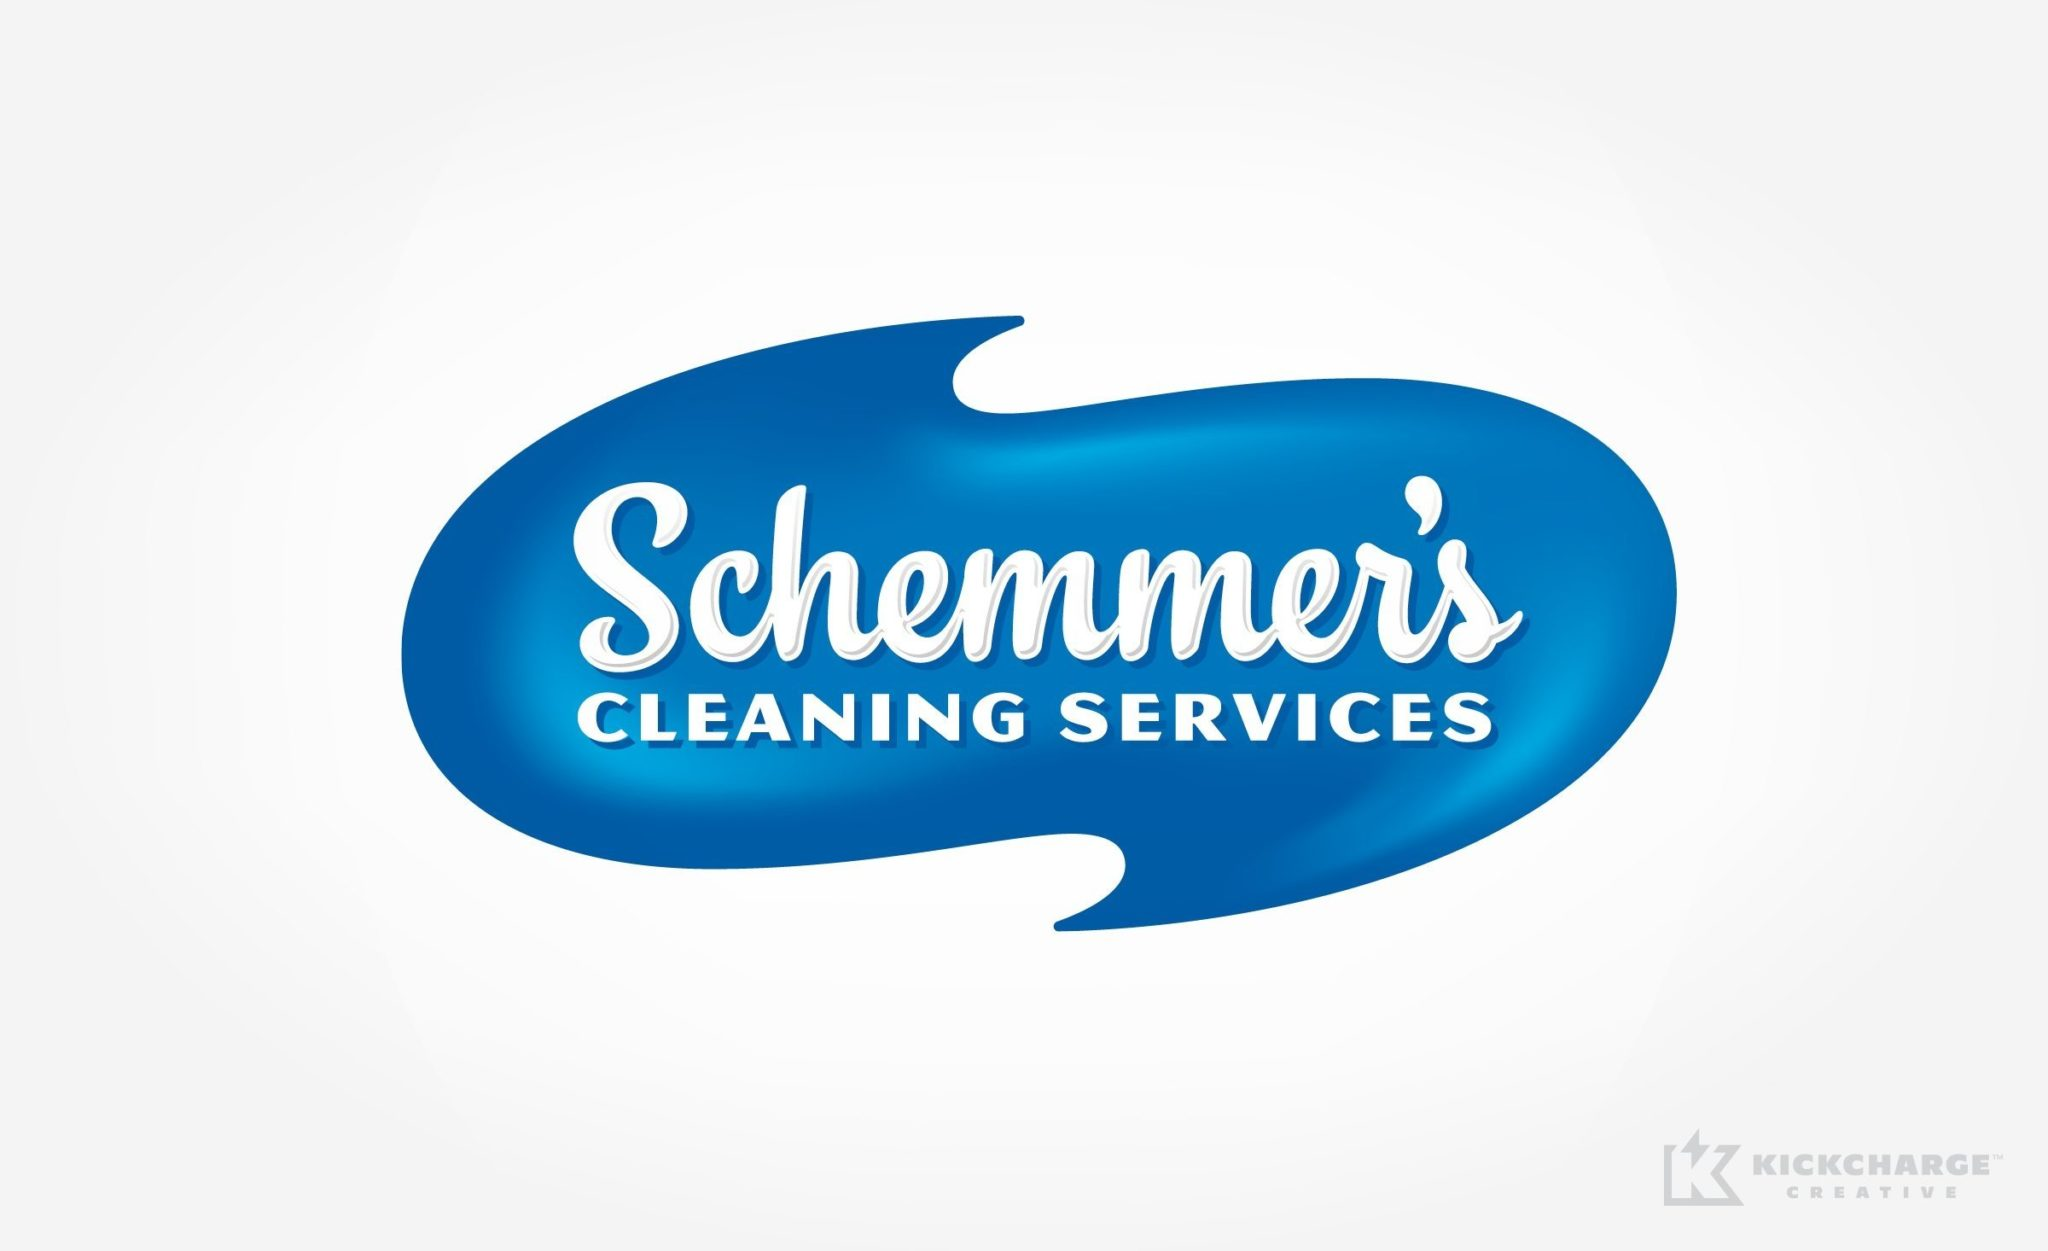 Logo design for a cleaning service located in Two Harbors, MN.